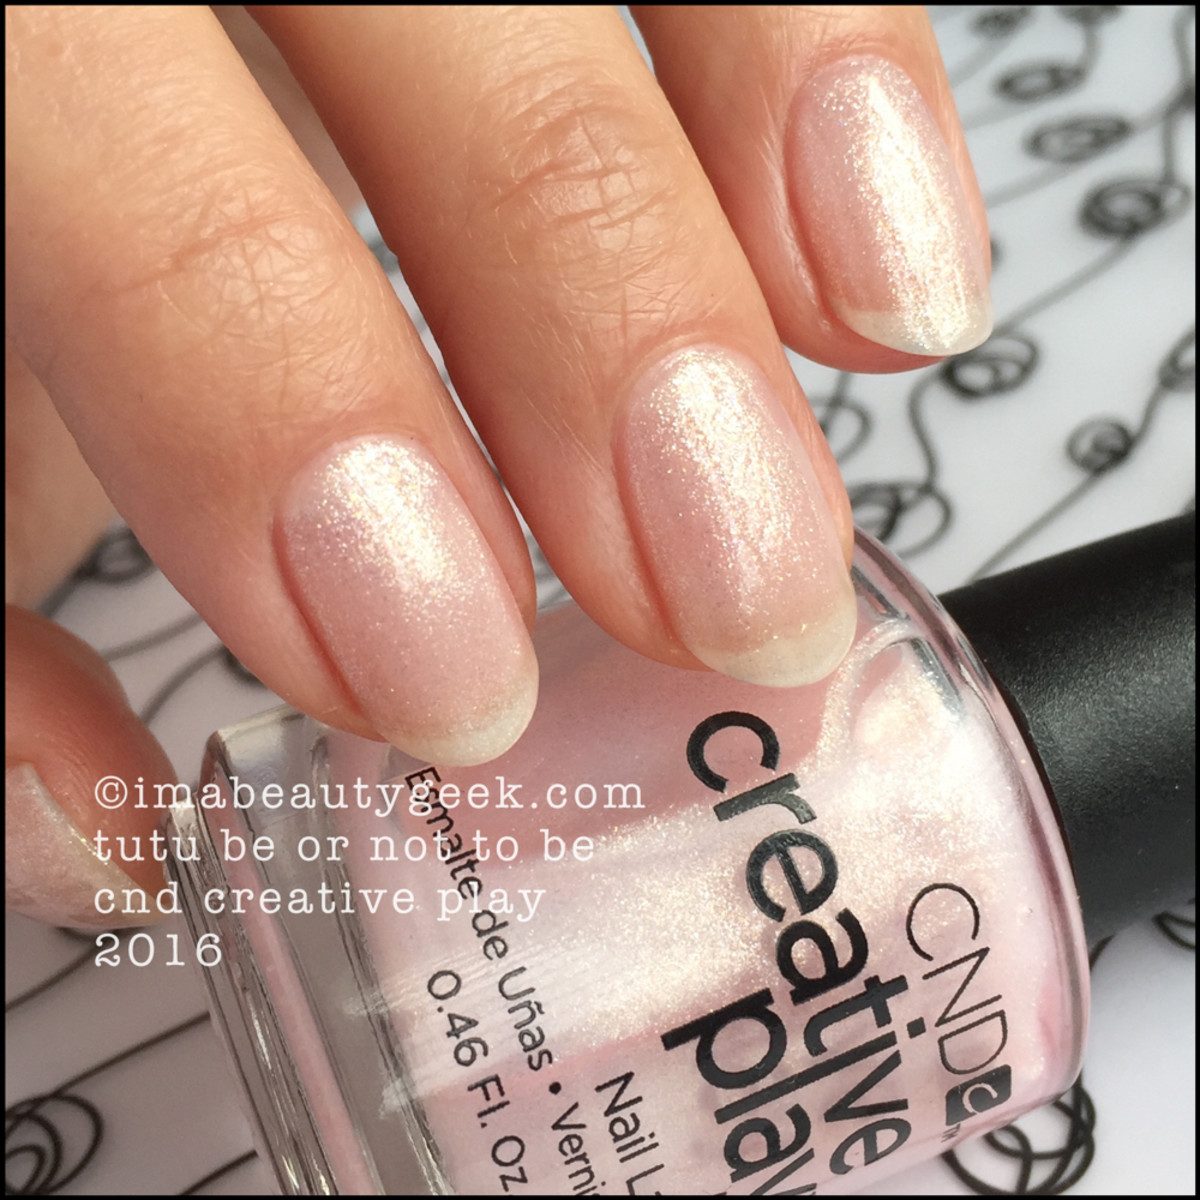 CND Creative Play Tutu Be or Not To Be_CND Creative Play Nail Polish Swatches